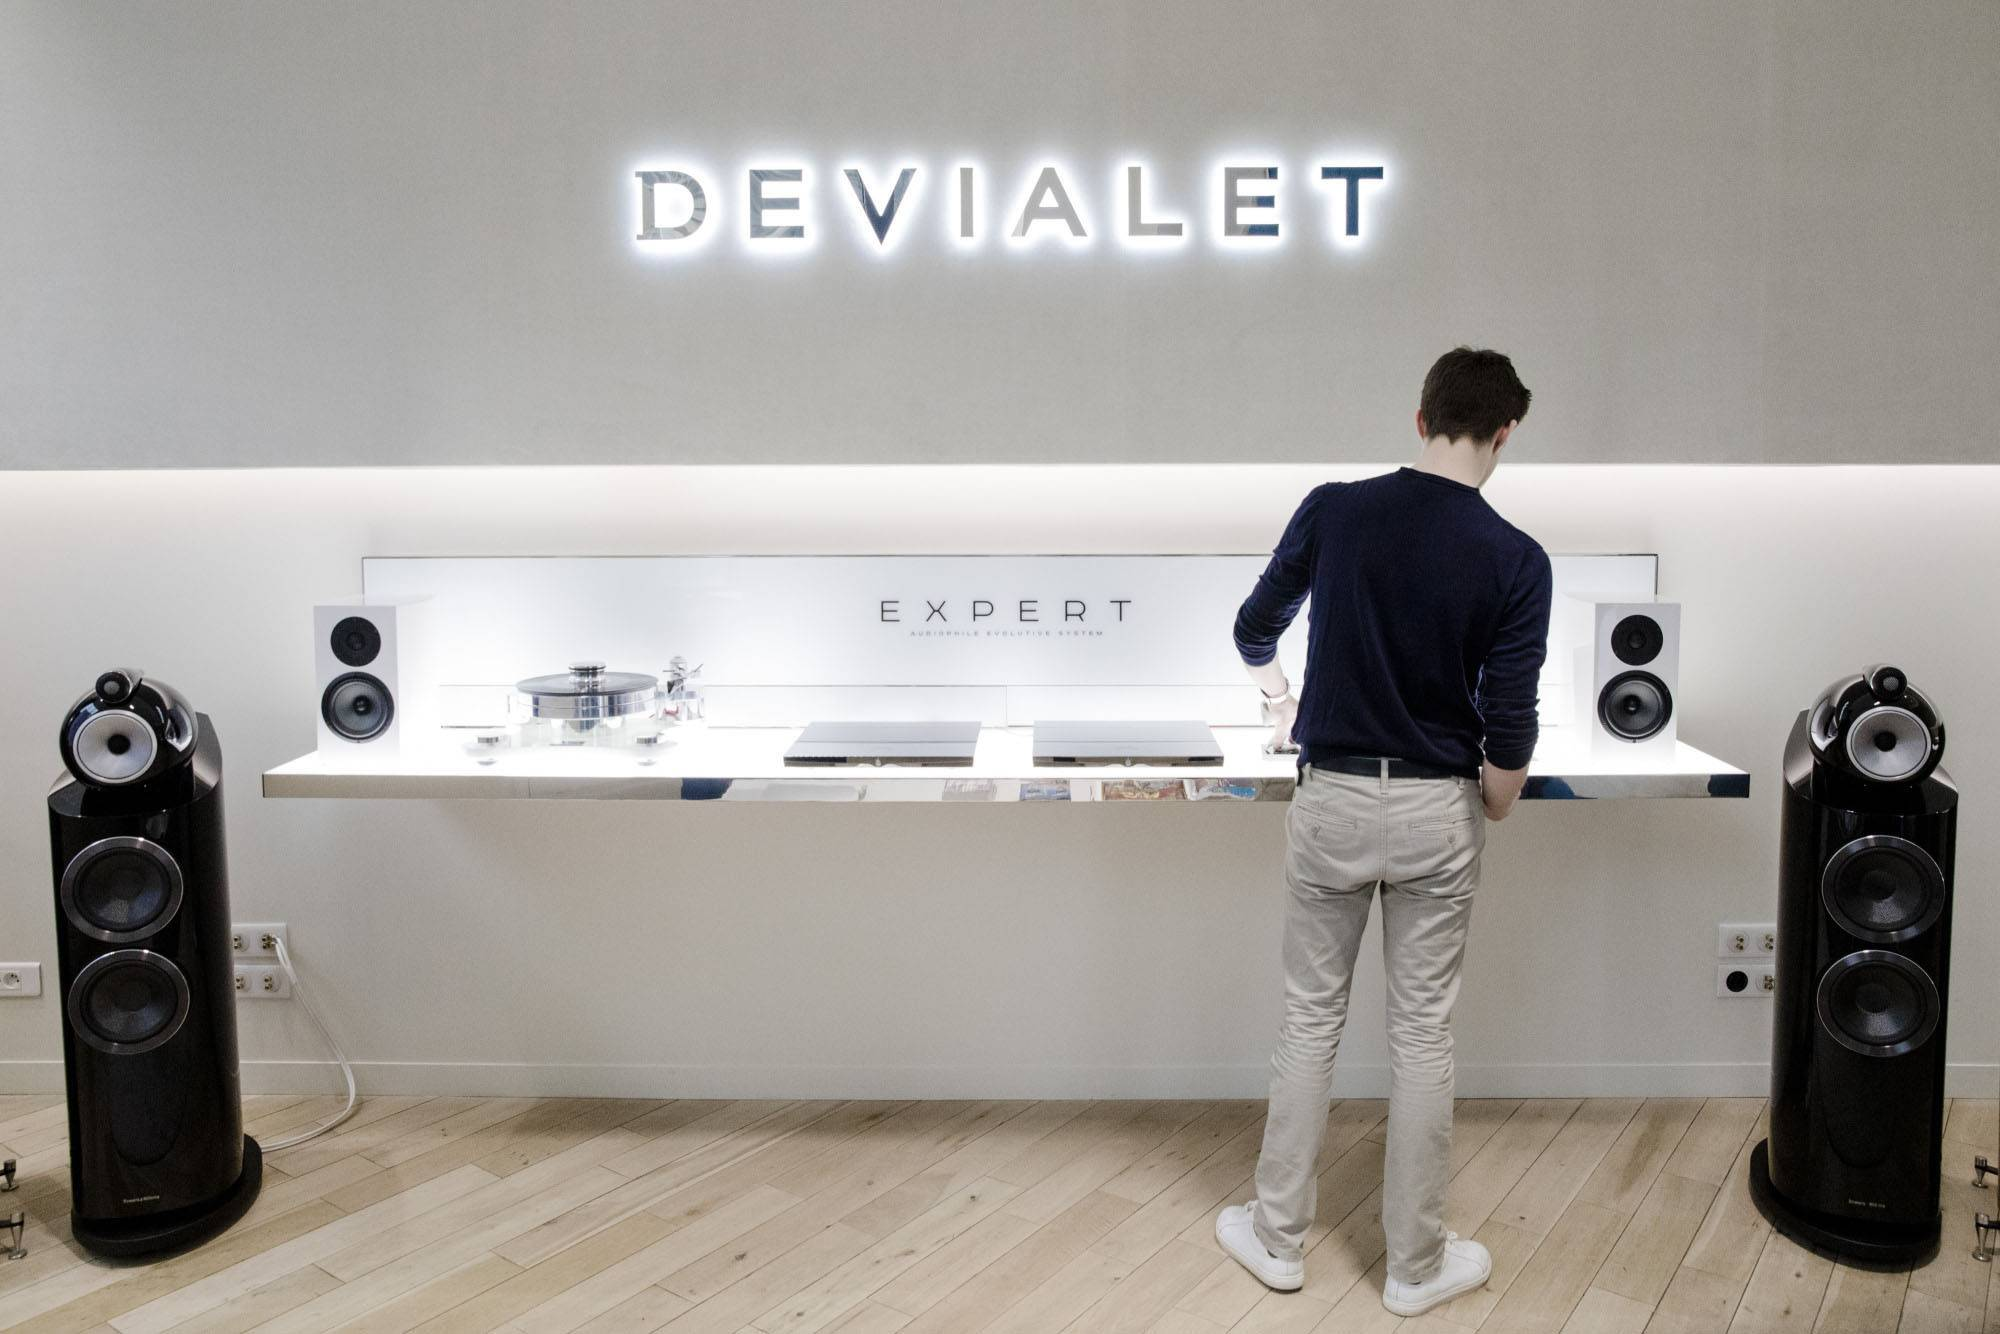 An employee tests equipment inside the Devialet SAS Analogue Digital Hybrid amplification technology showroom in Paris, France.